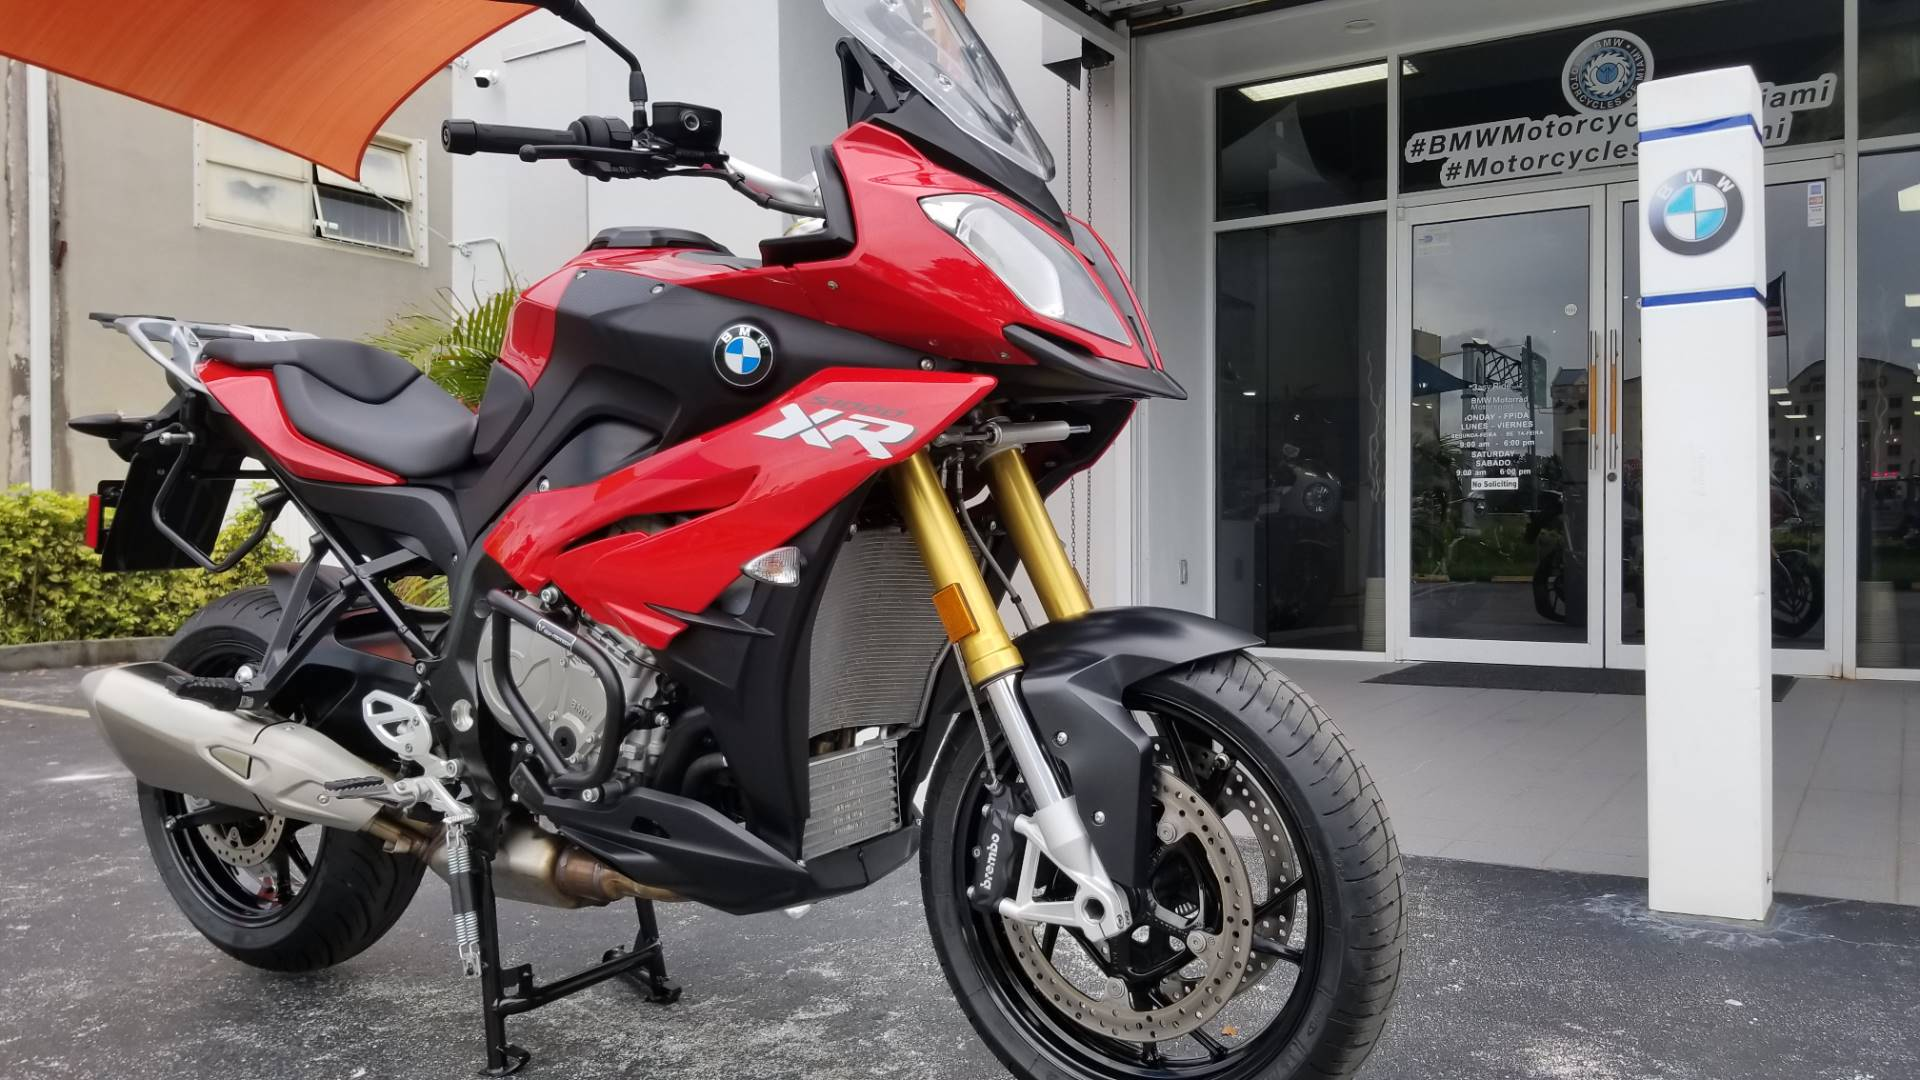 Used 2016 BMW S 1000 XR For Sale, Pre Owned BMW S 1000XR For Sale, Pre-Owned BMW Motorcycle S1000XR, BMW Motorcycle, S 1000 XR, DUAL, BMW